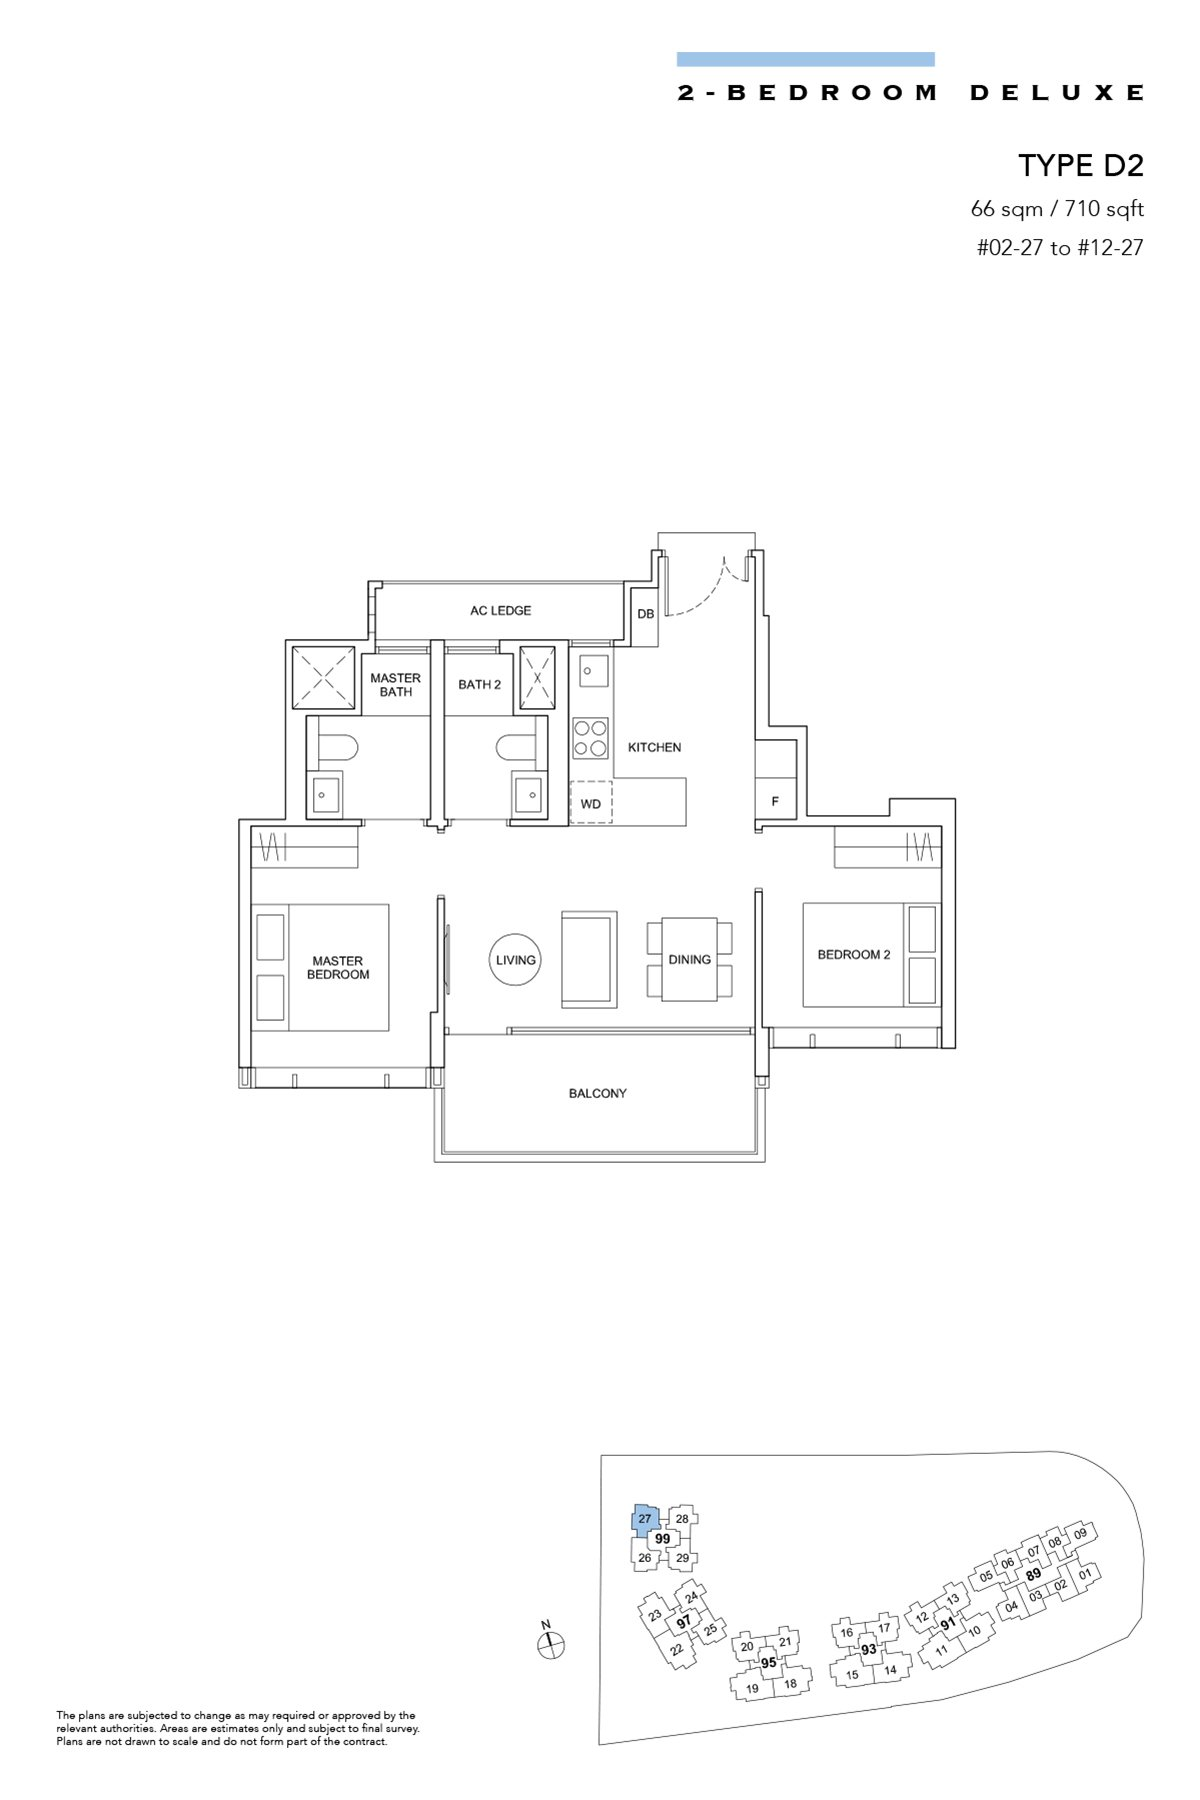 Hyll on Holland Type D2 2br Deluxe 710 sqft